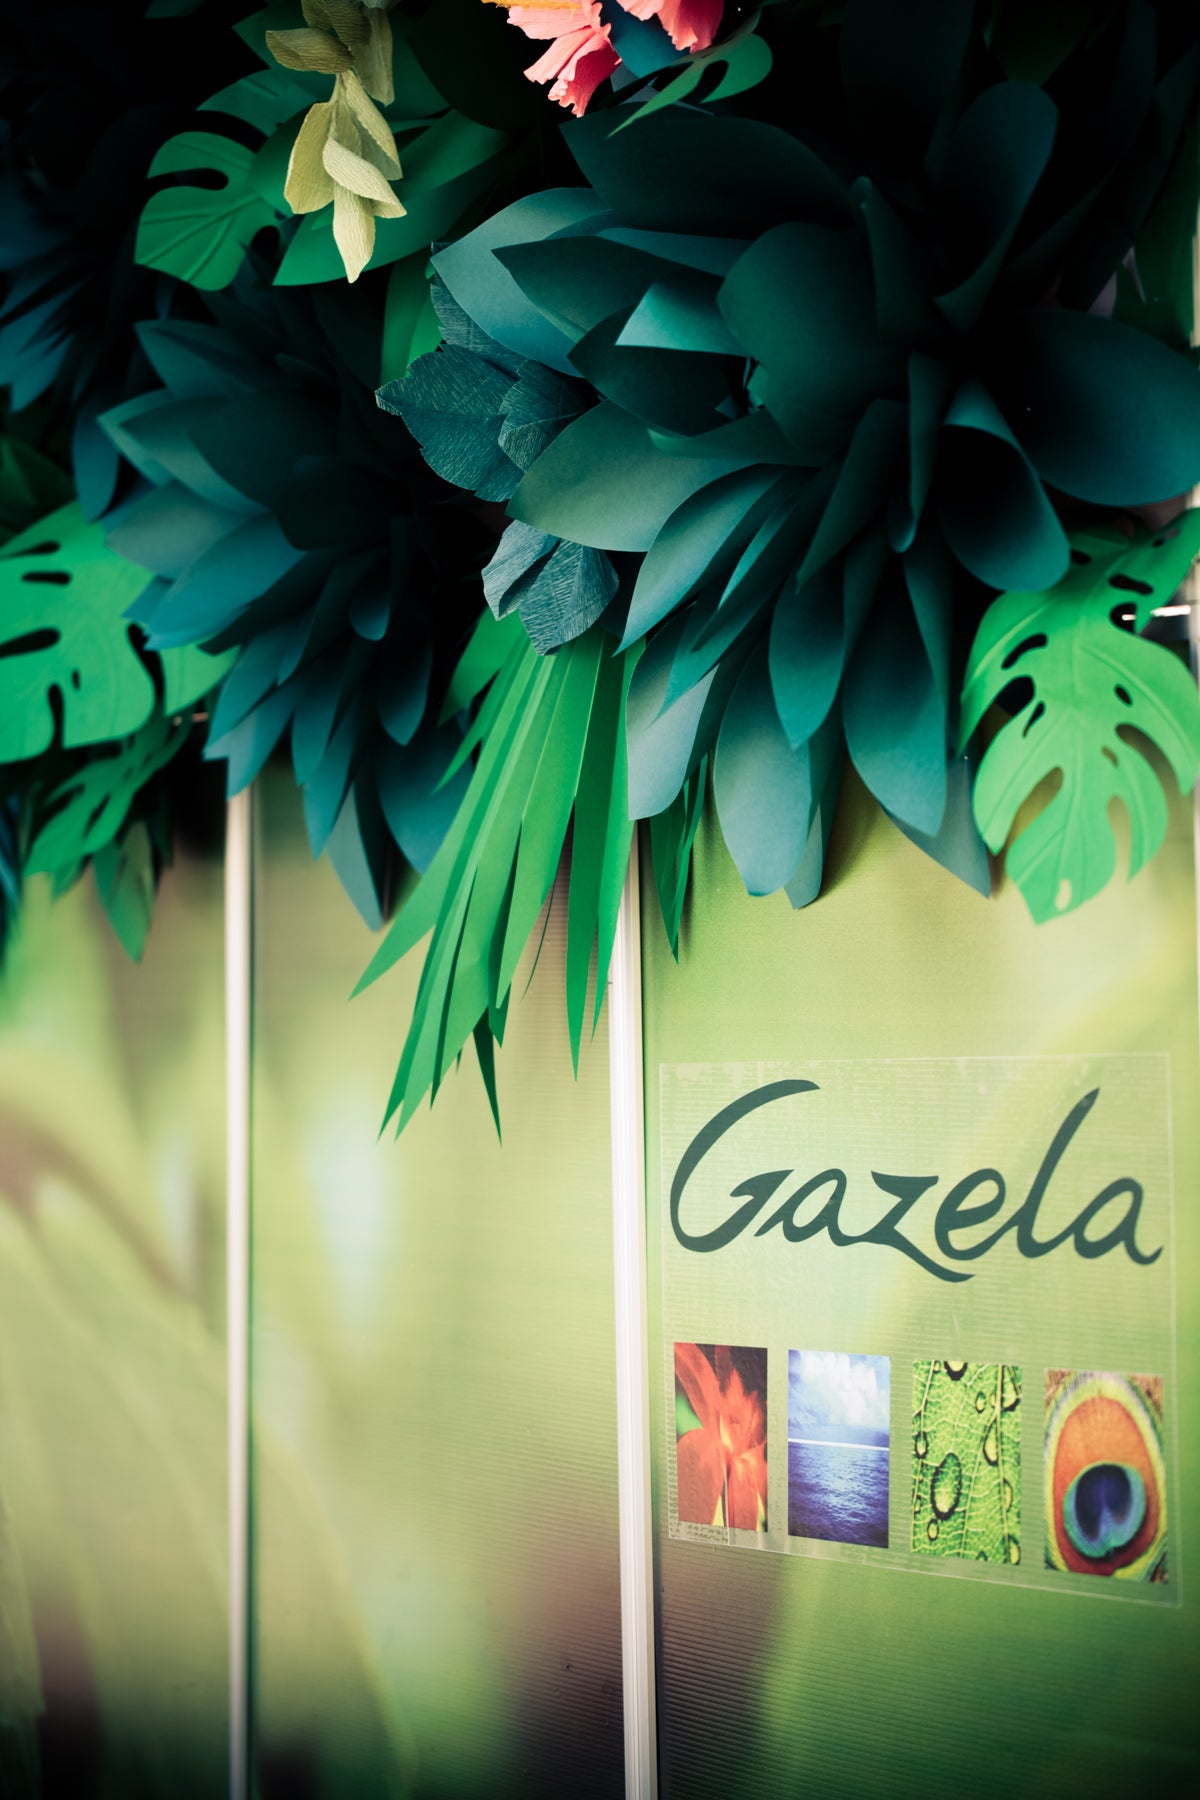 Gazela Bar Photowall with paper flowers